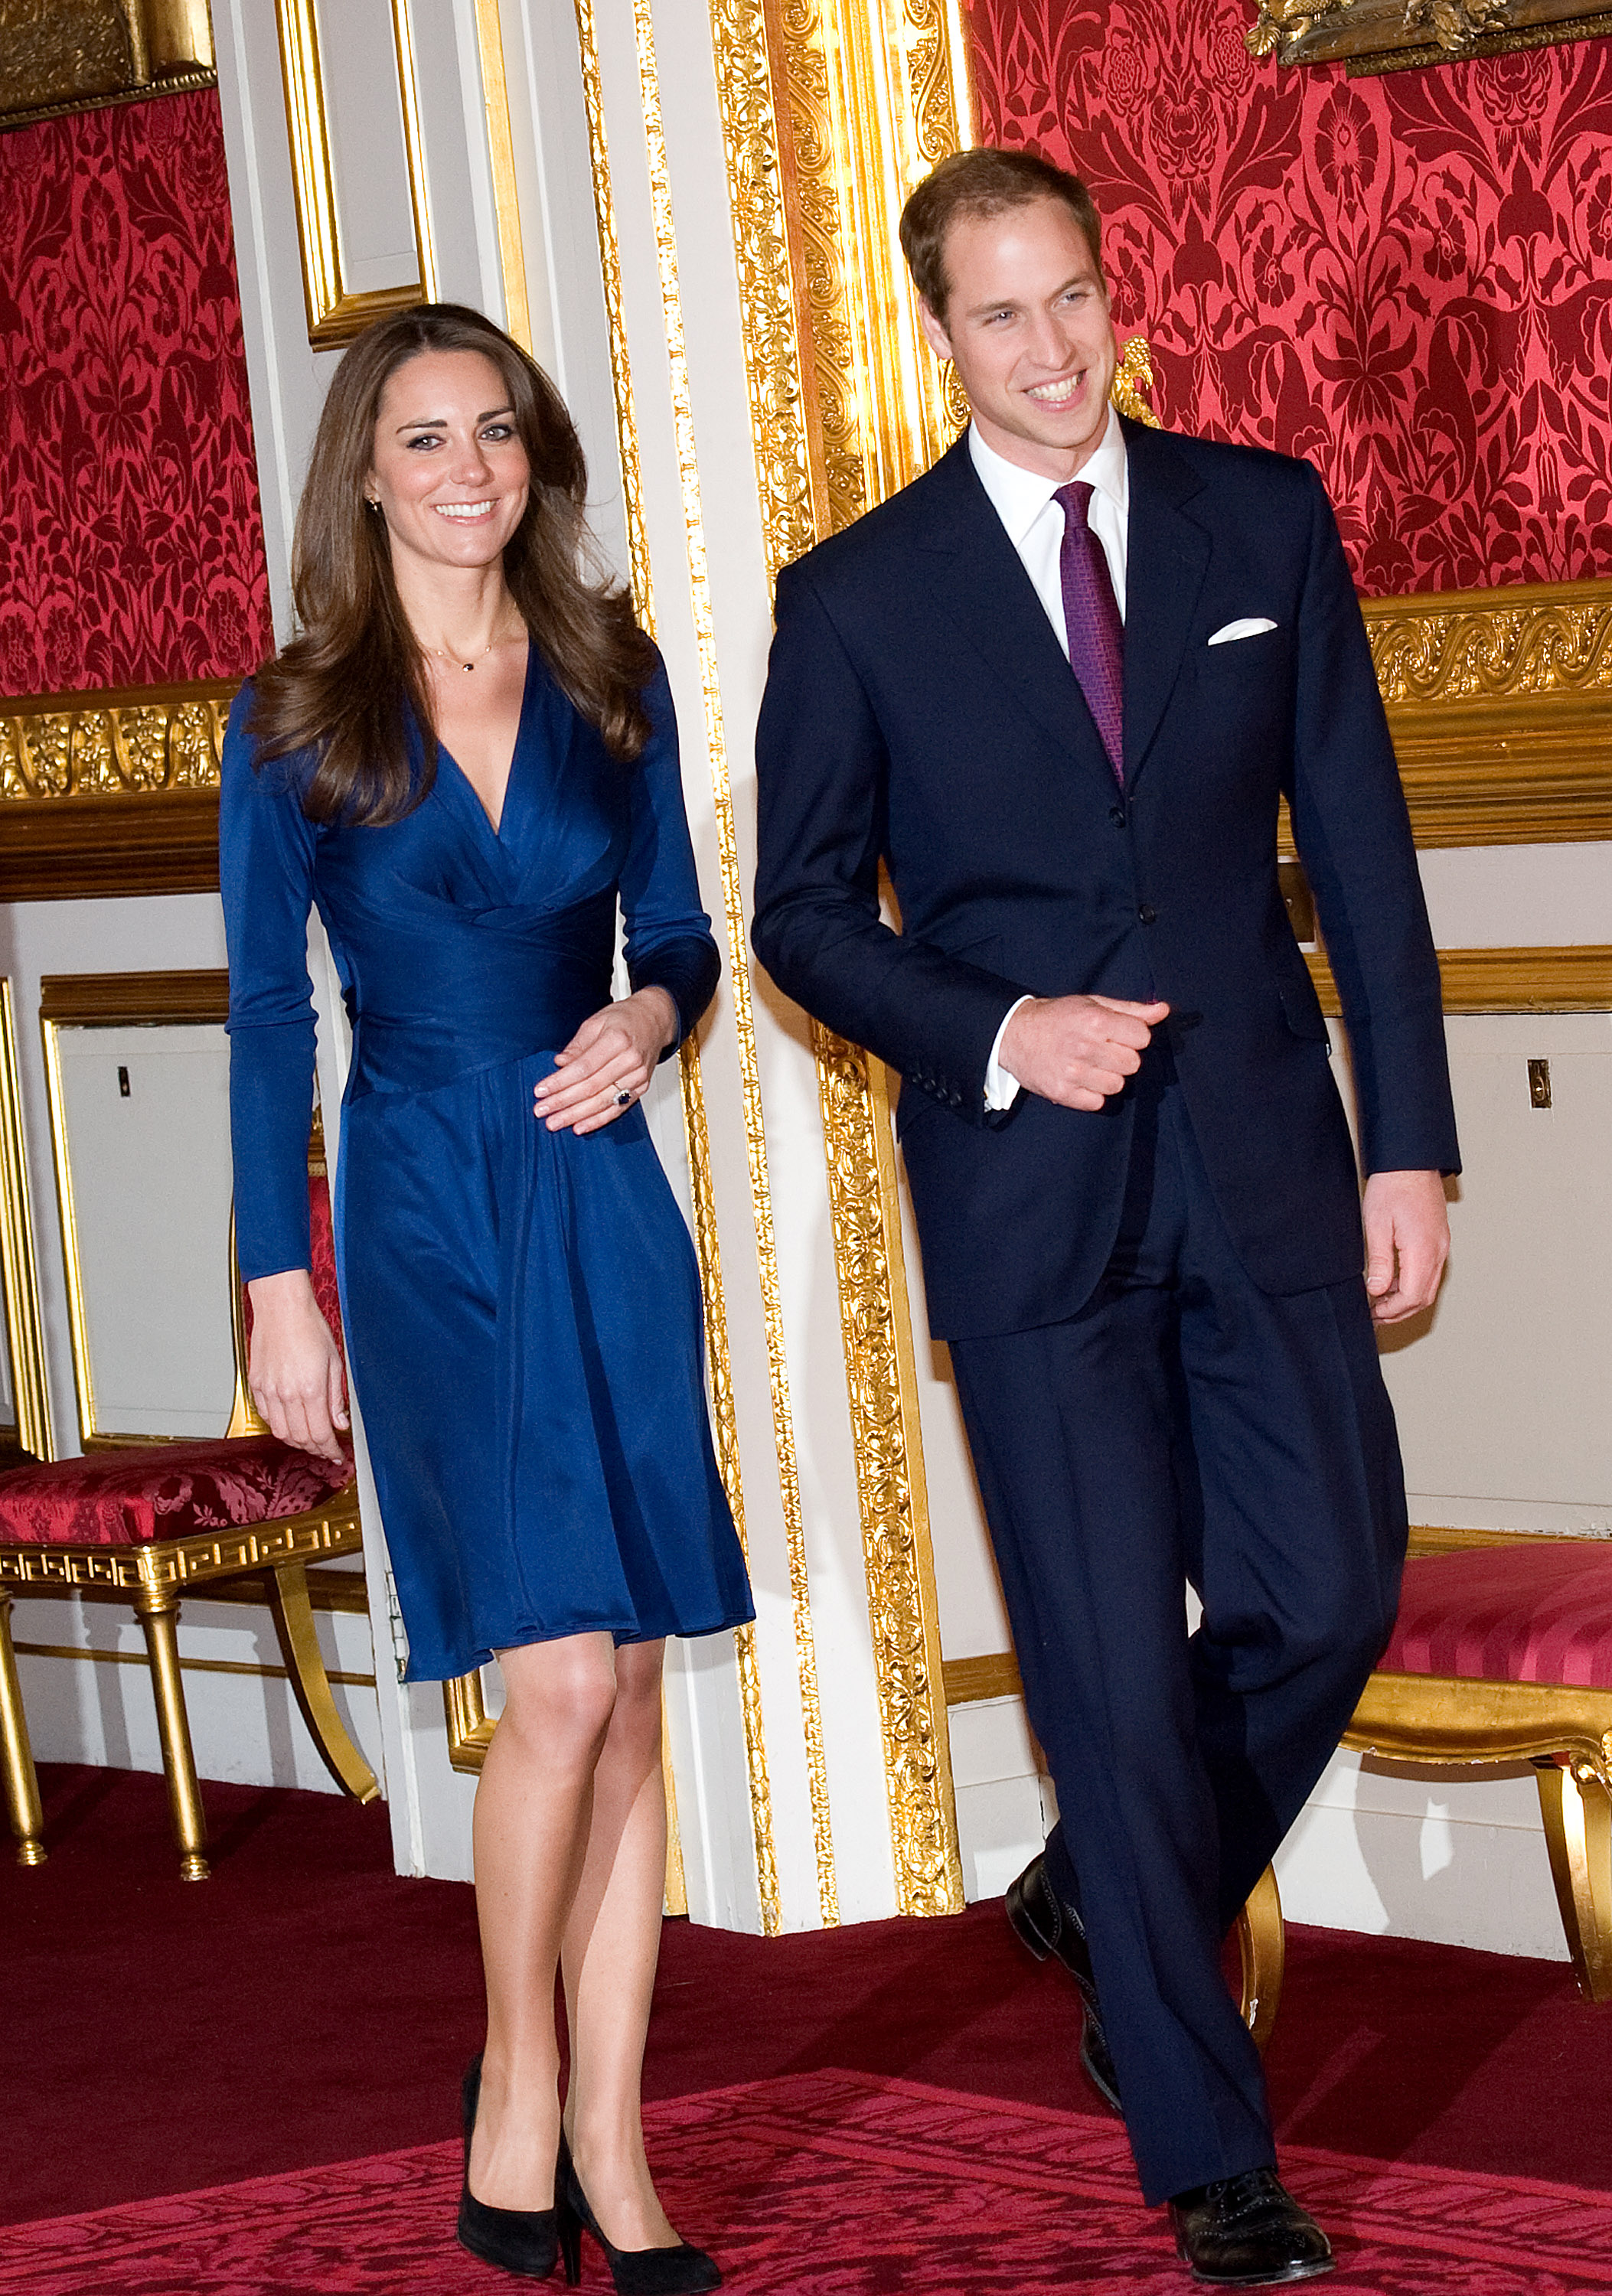 Announcement Of Prince William's Engagement To Kate Middleton